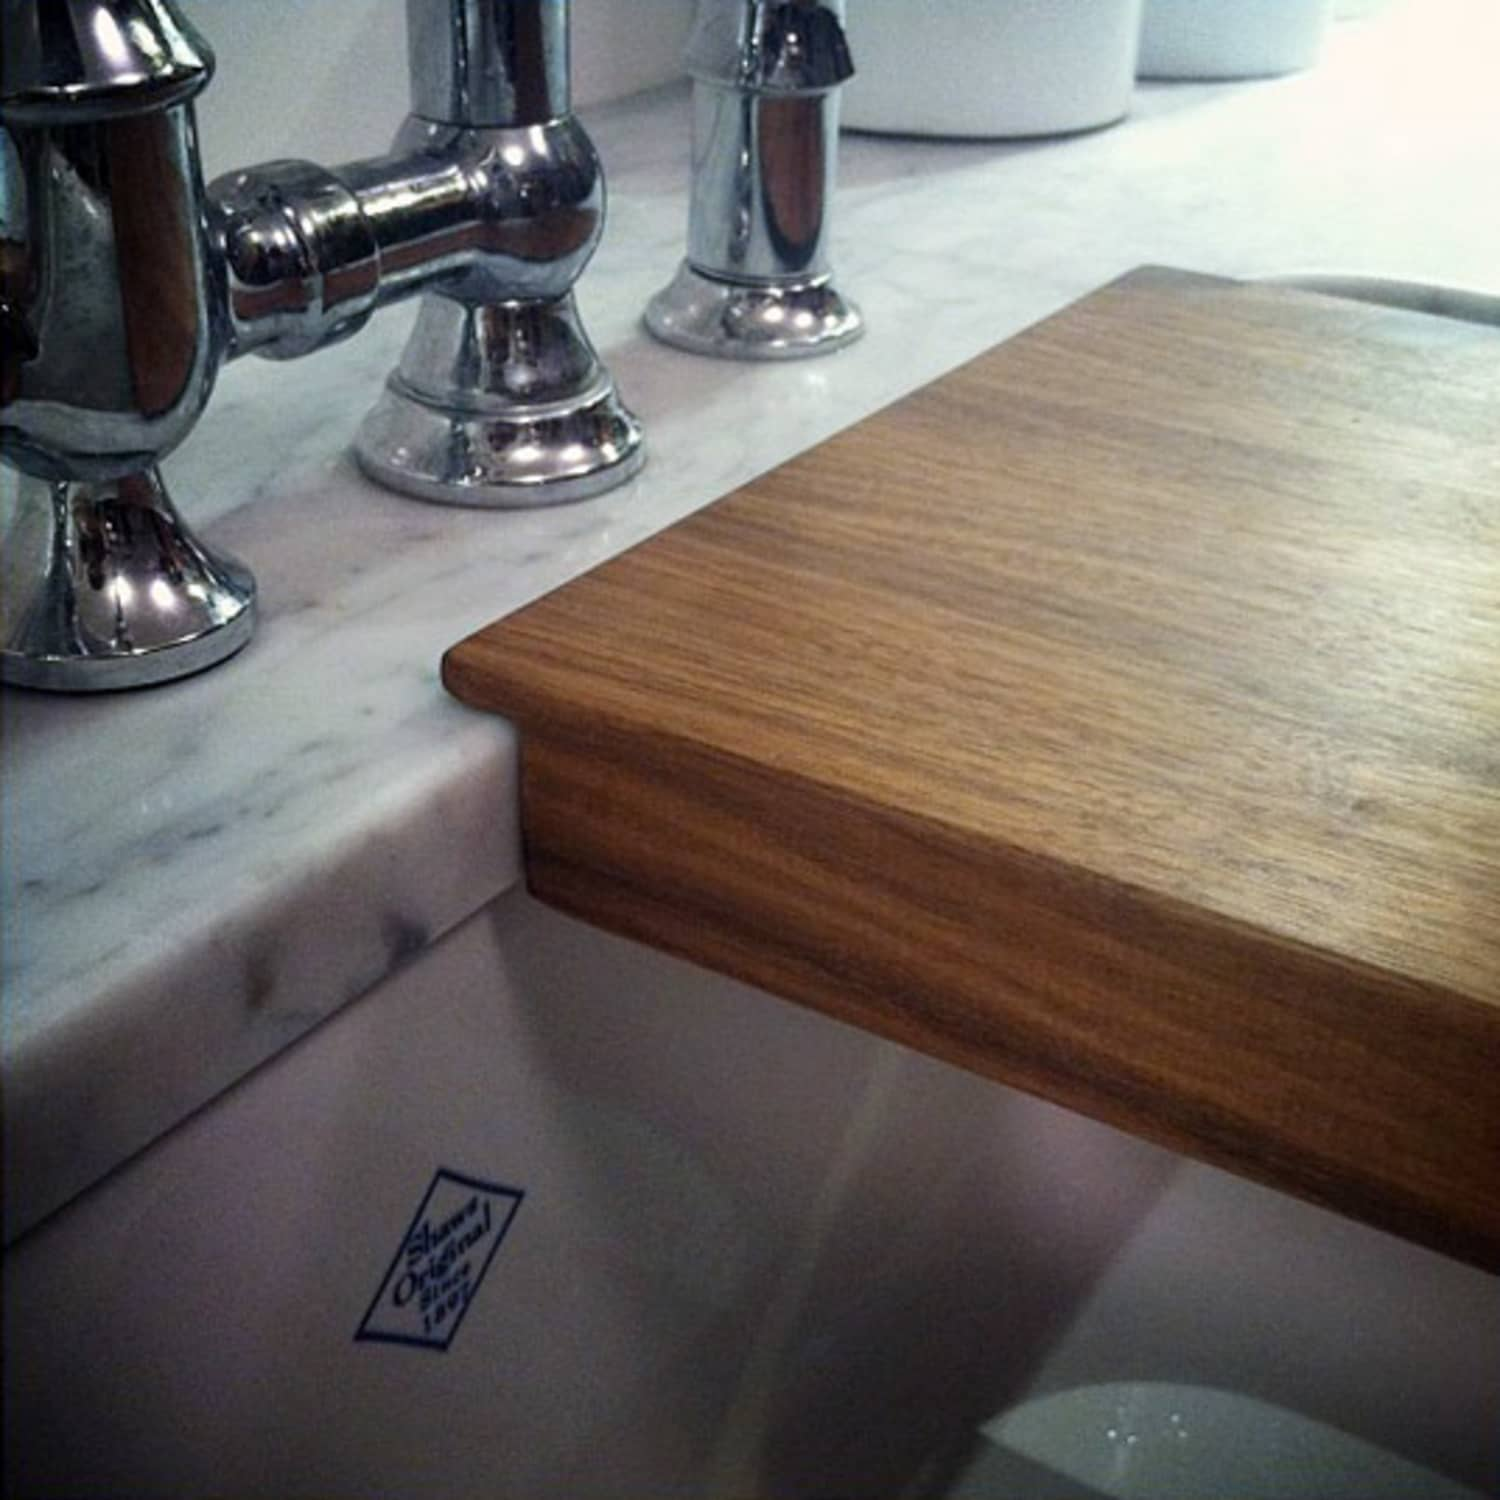 integrated cutting board for your sink